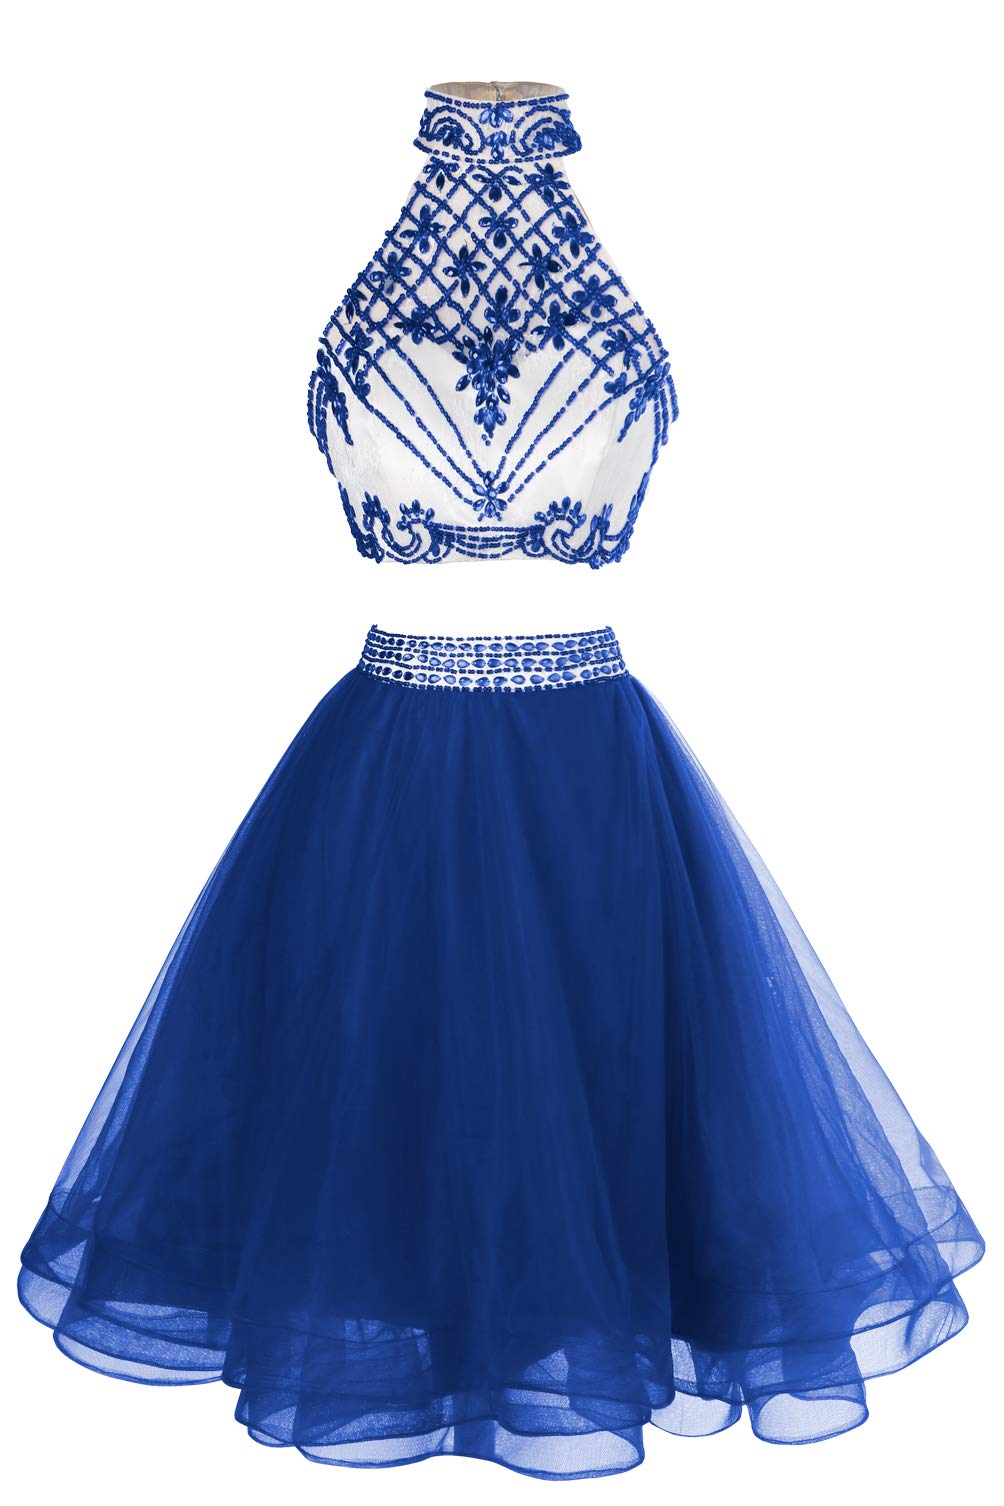 978d7f789d9 MsJune Women s Short Prom Gown Two Piece Beaded Tulle Homecoming Party  Dresses Royalblue 18W